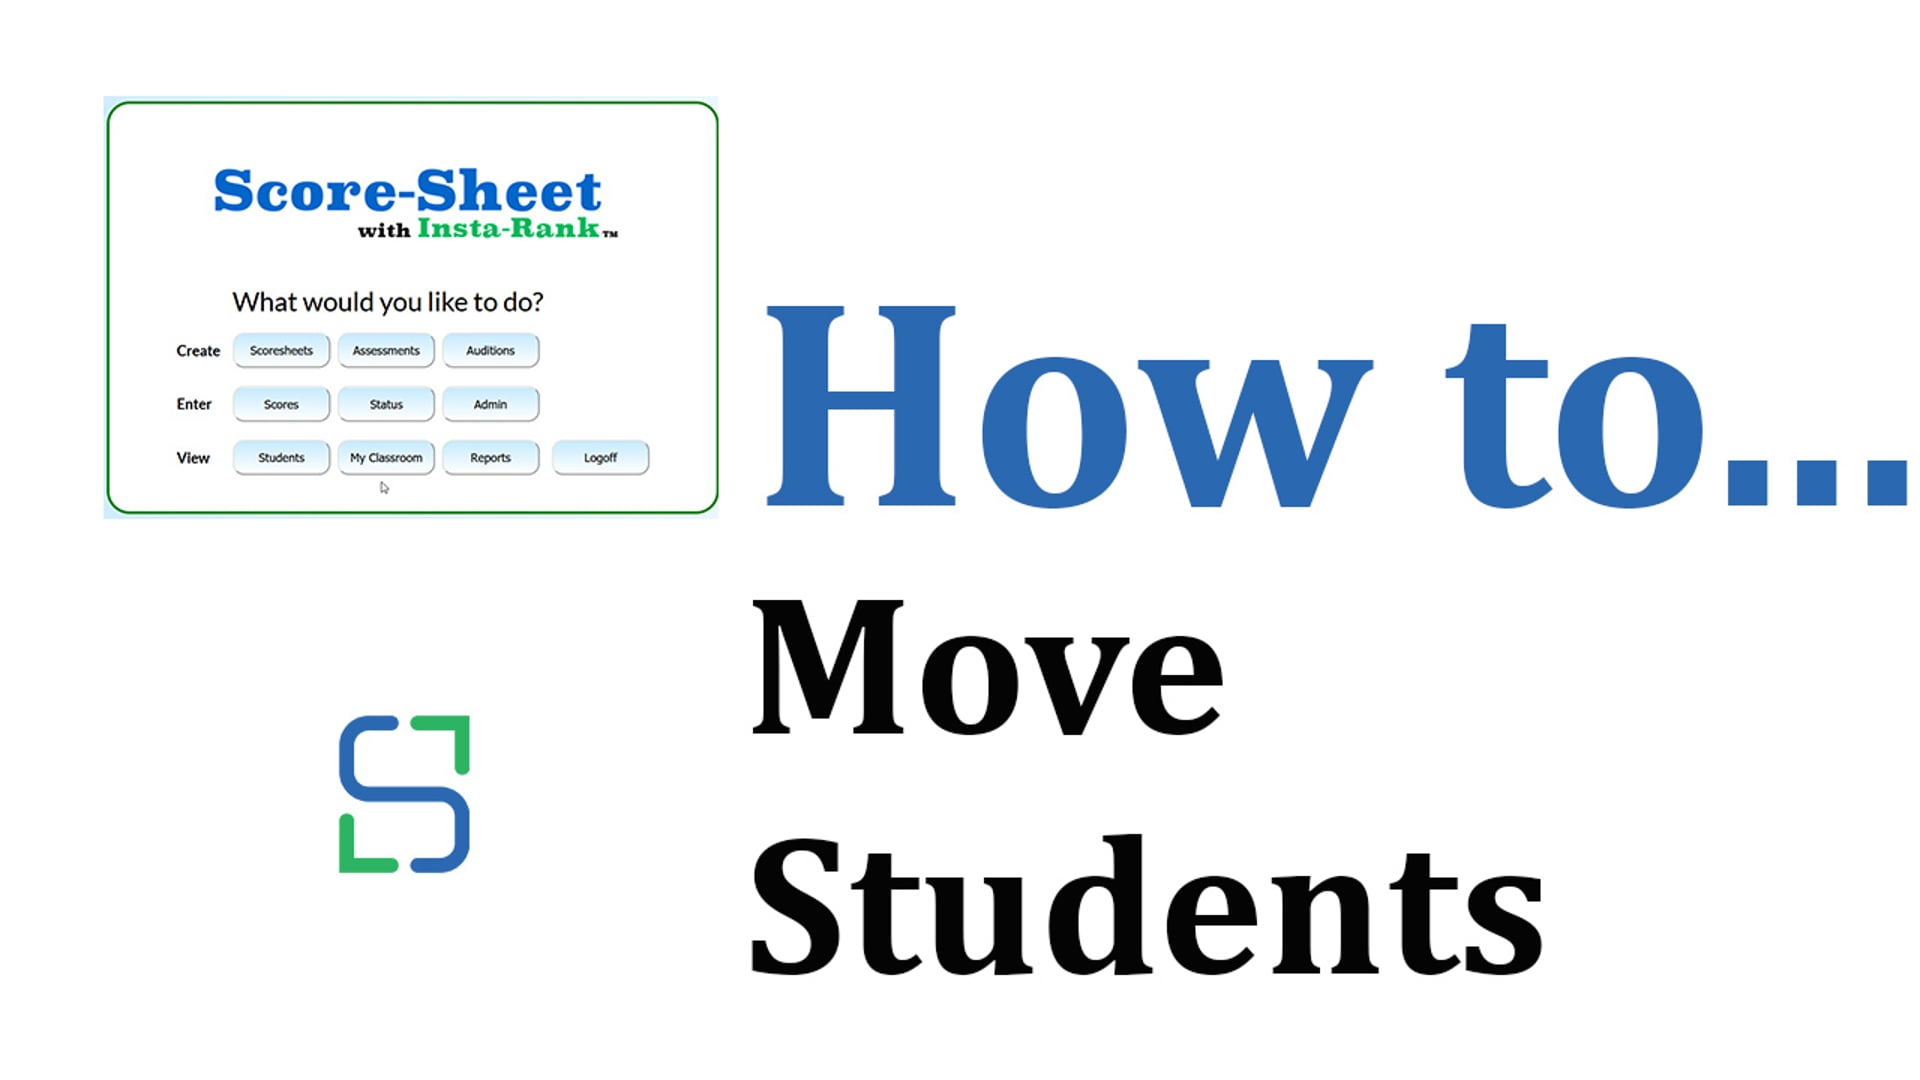 15 - MOVE STUDENTS